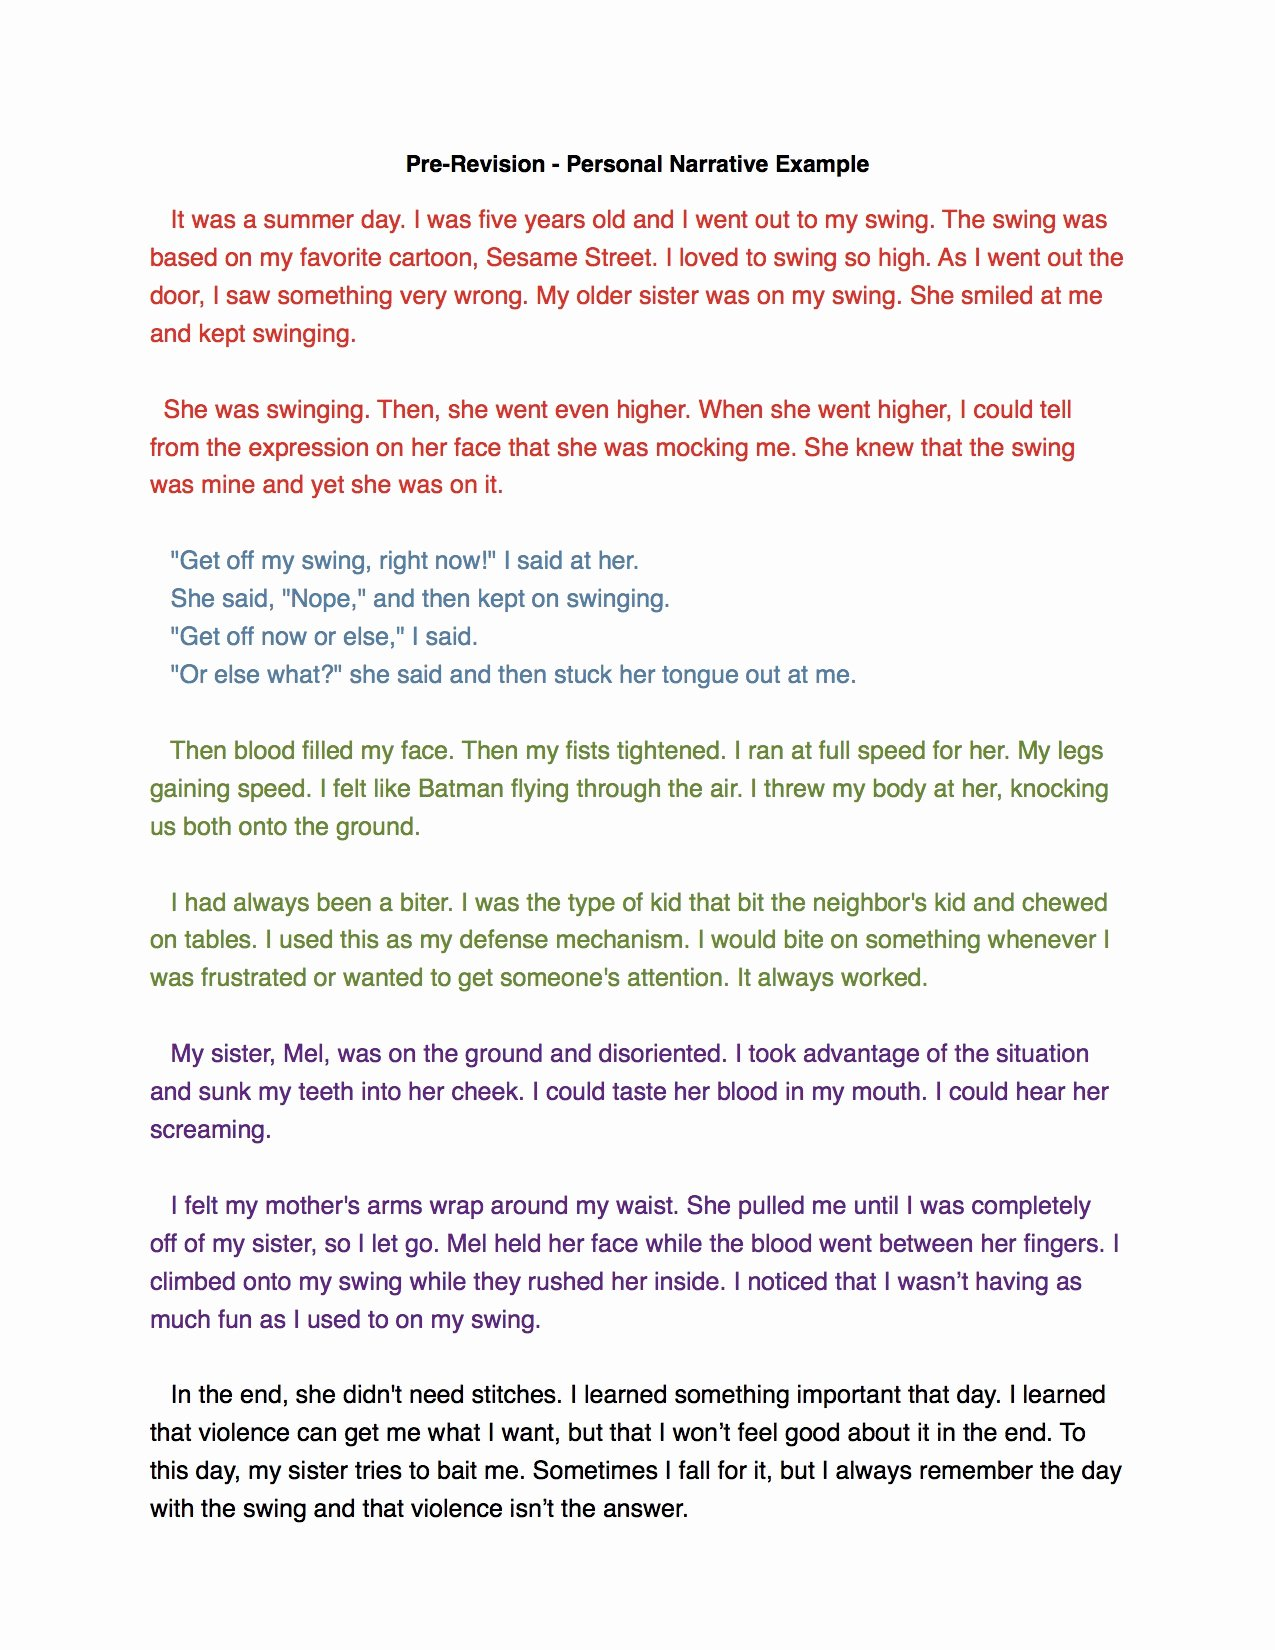 Sample Of Narrative Essay Best Of High Five for Friday 12 12 14